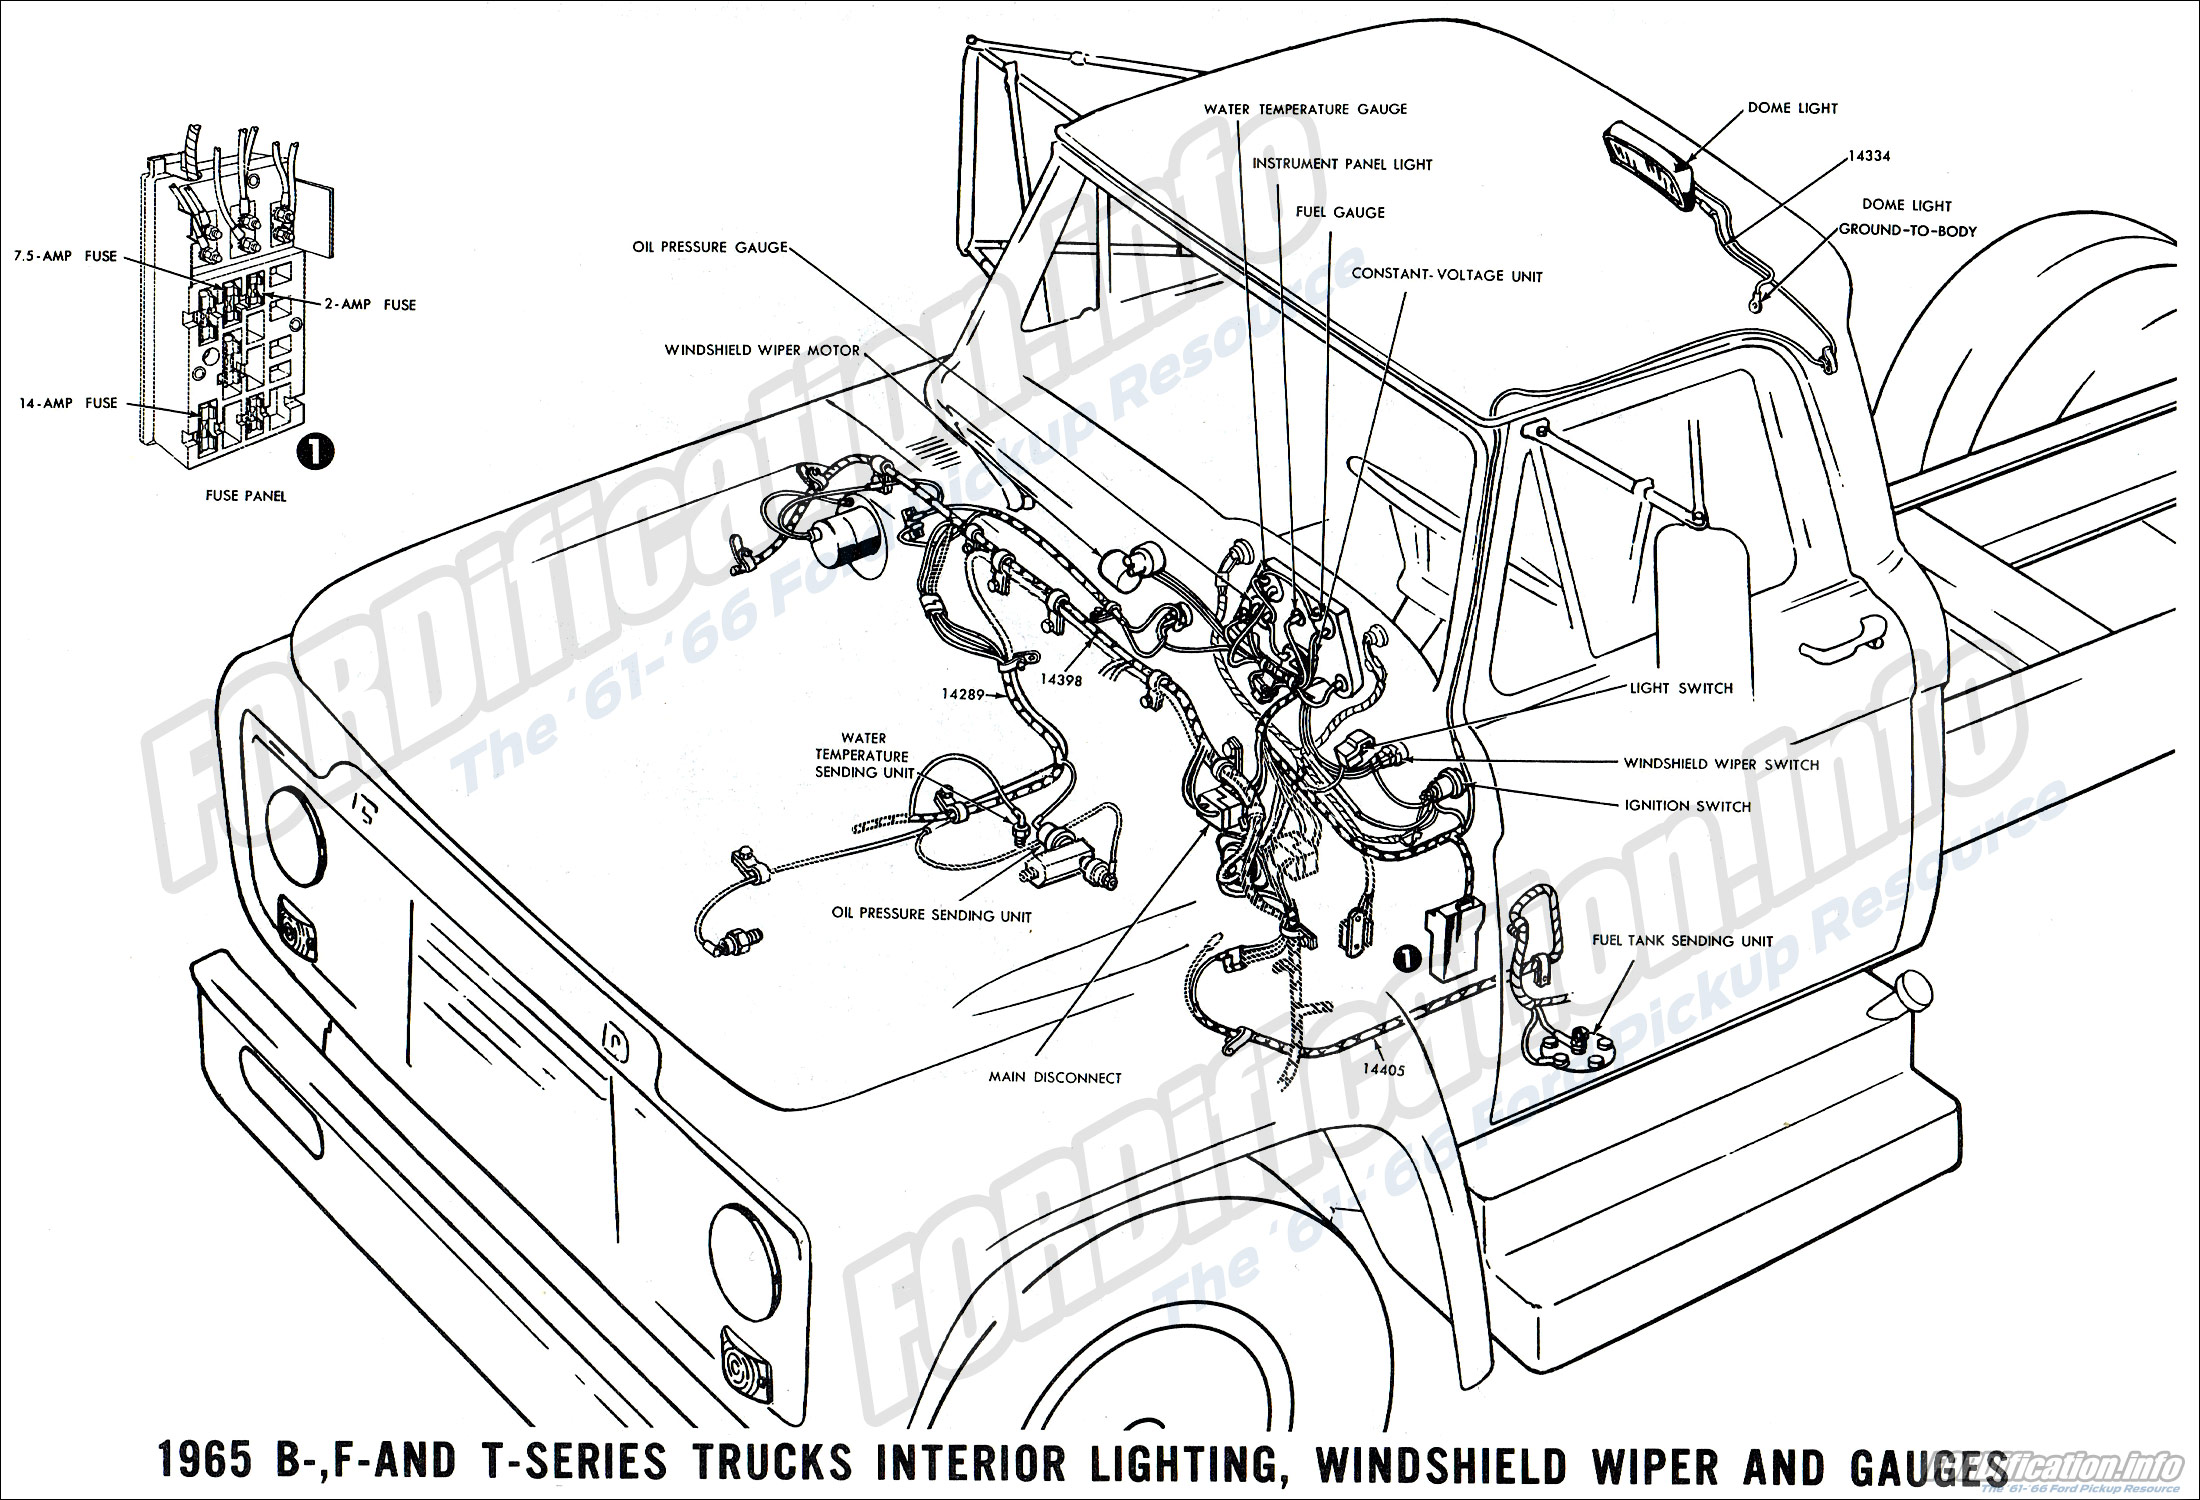 1966 Corvette Wiring Diagram Air Conditioning. Corvette